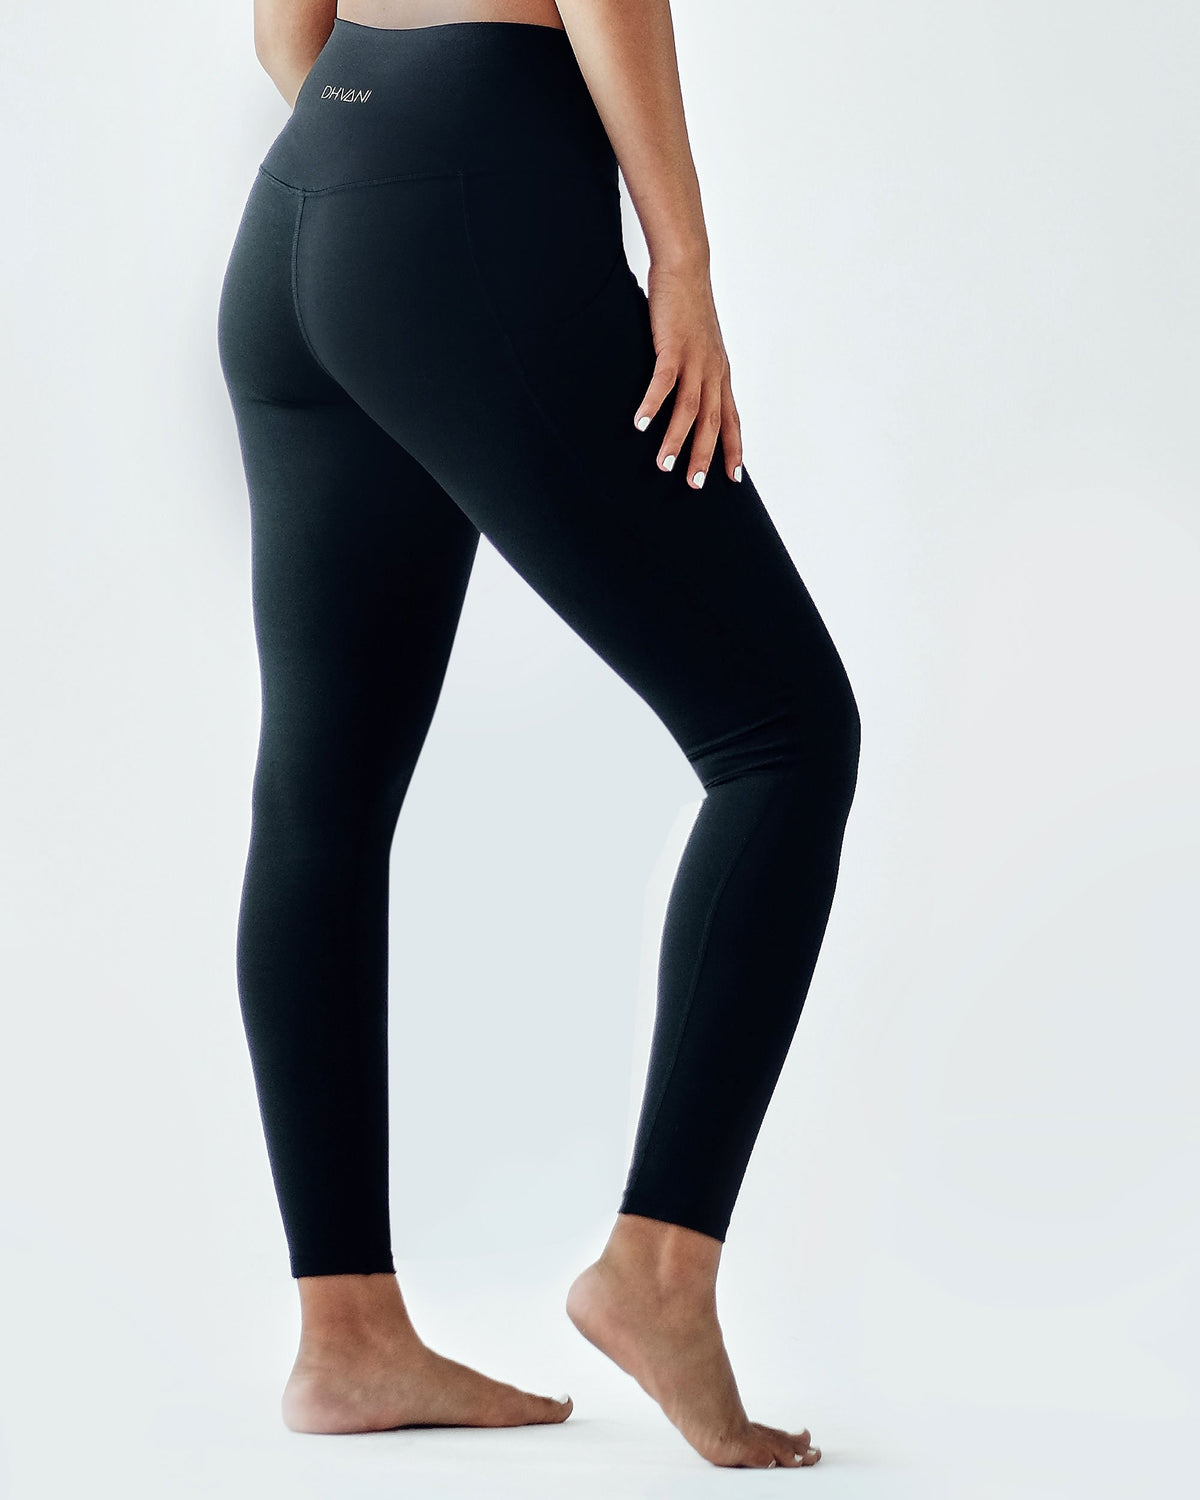 Terra Leggings